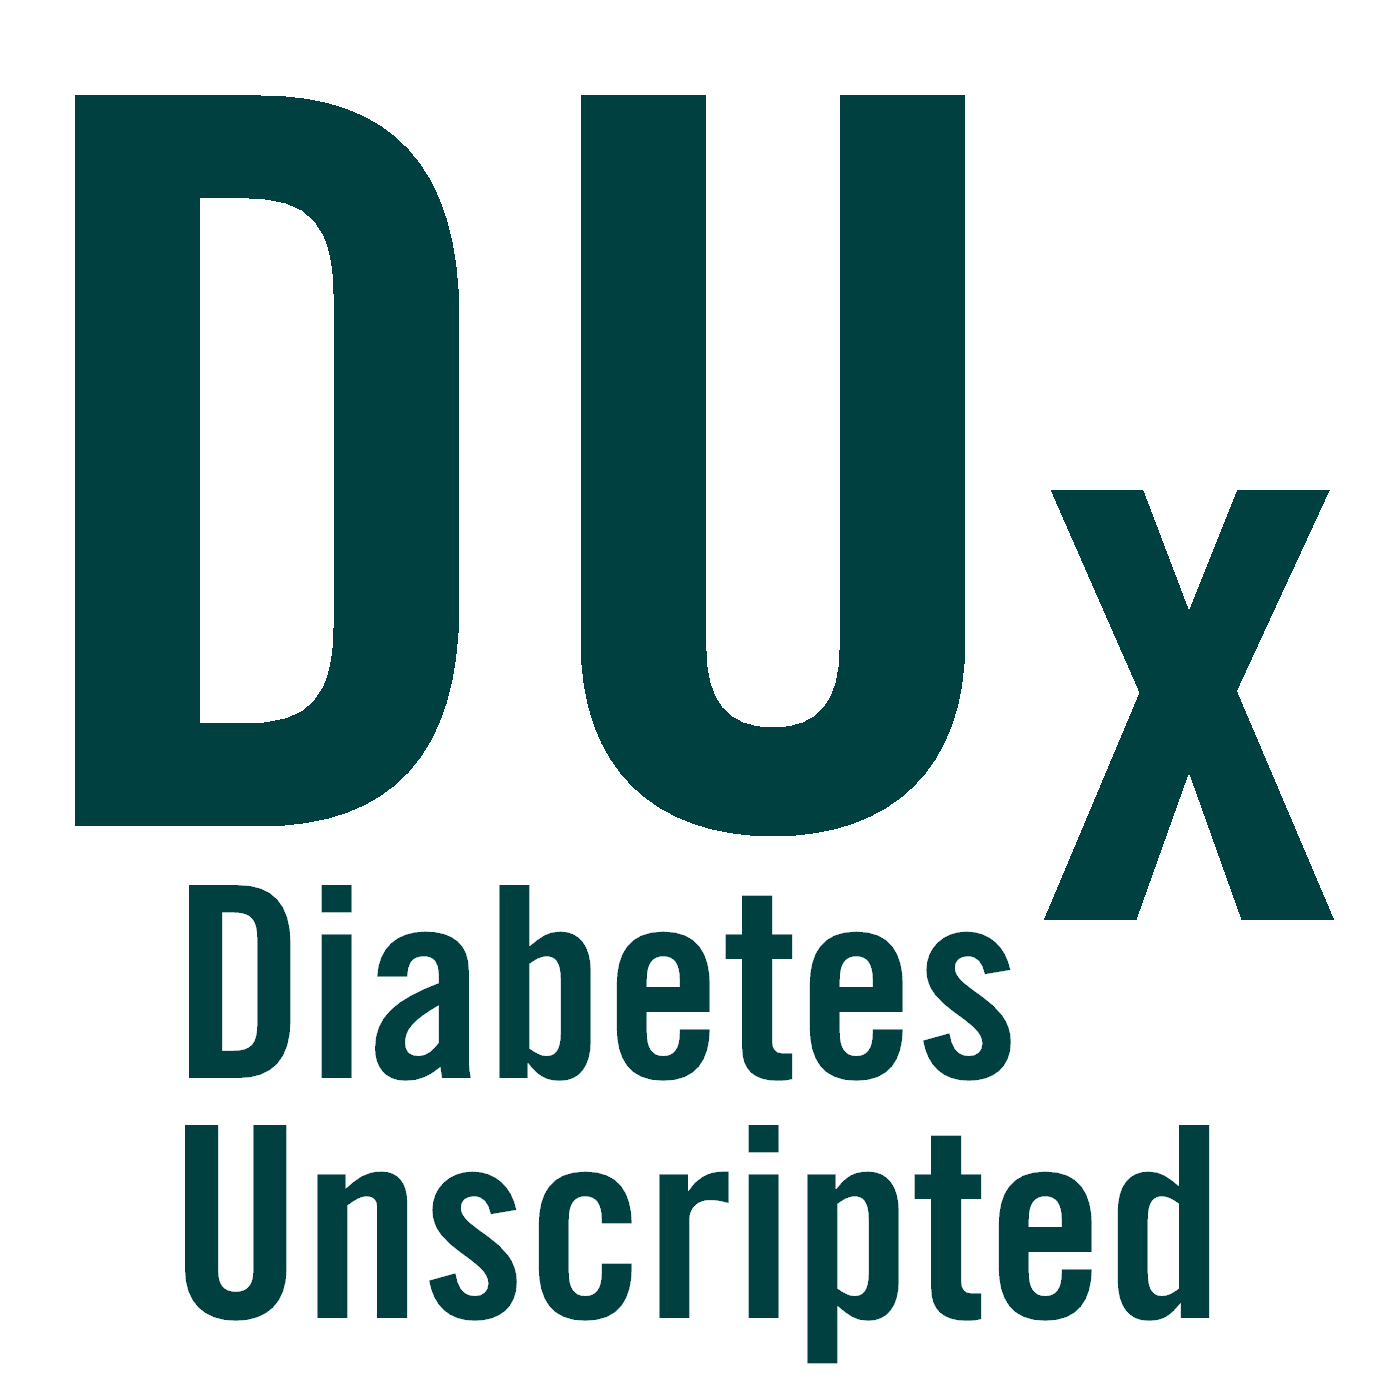 Diabetes Unscripted